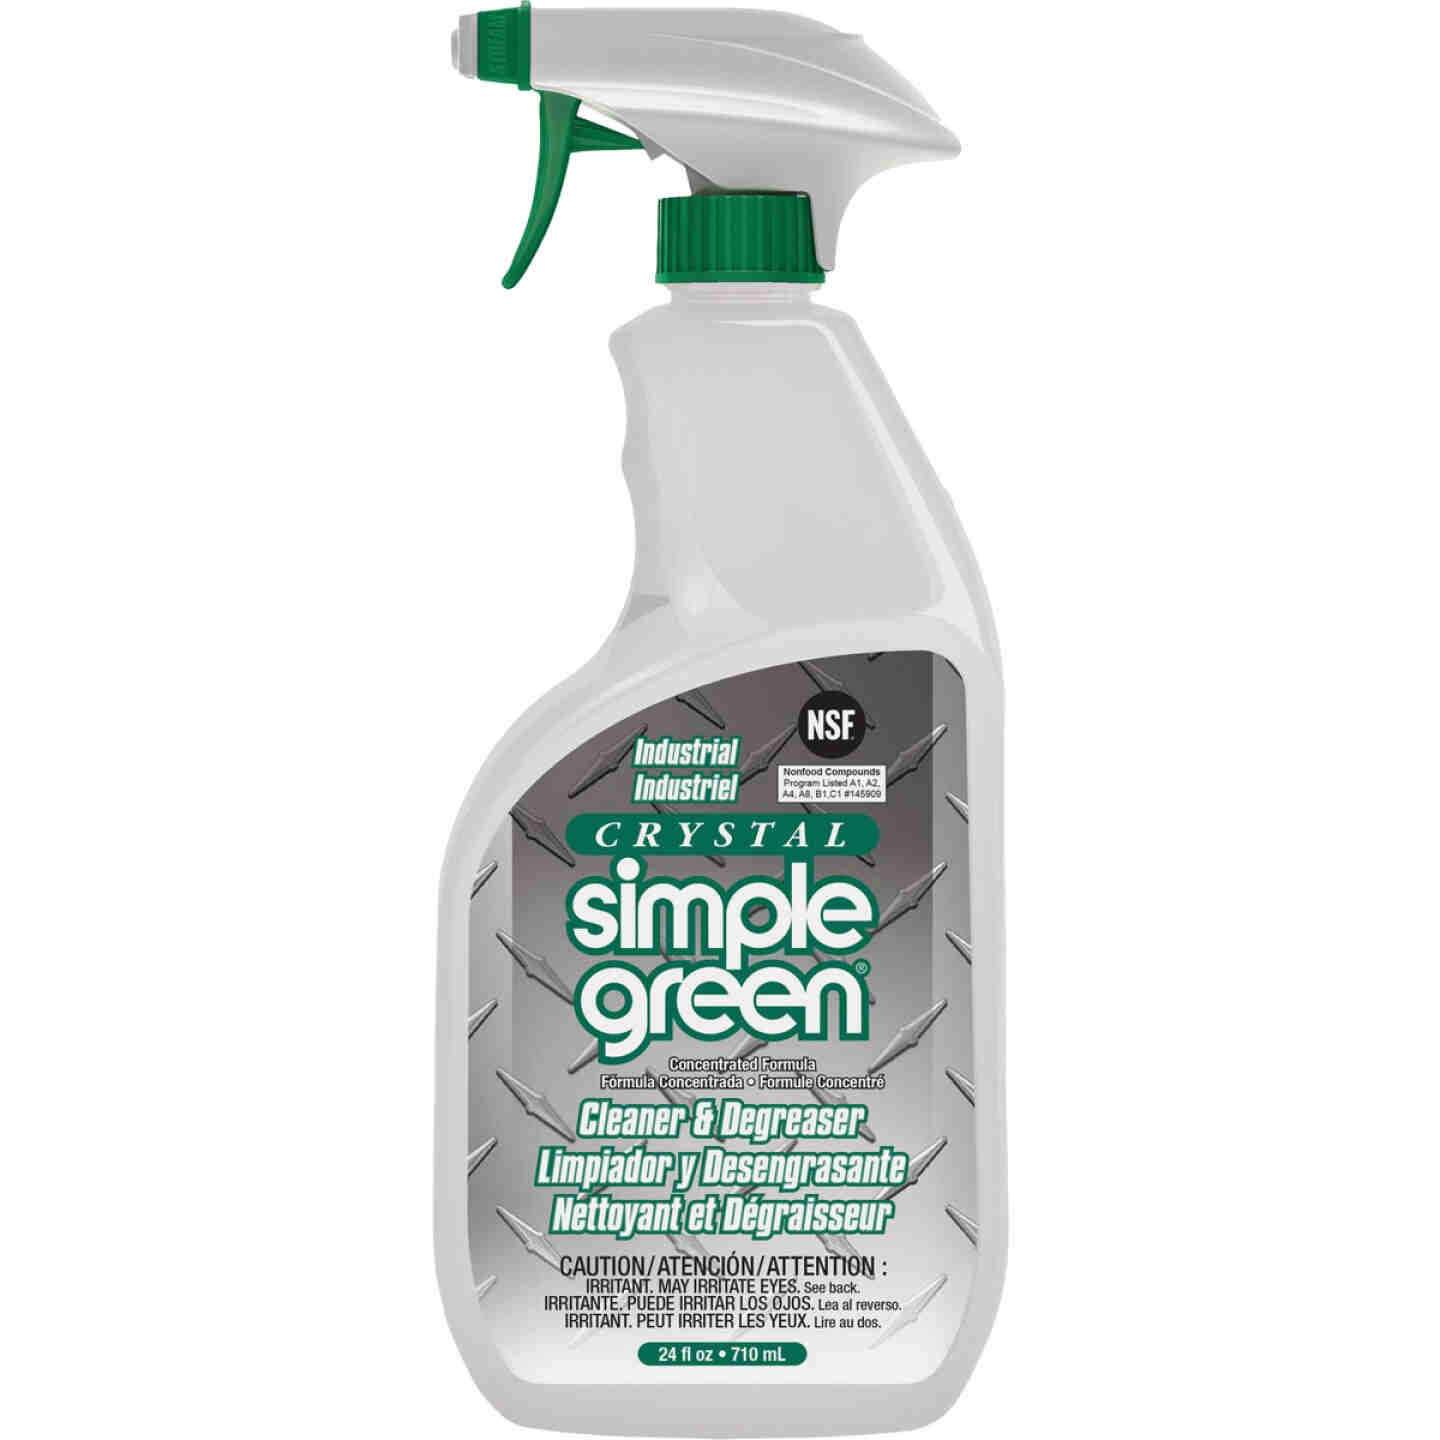 Simple Green 24 Oz. Crystal Industrial Cleaner & Degreaser Image 1